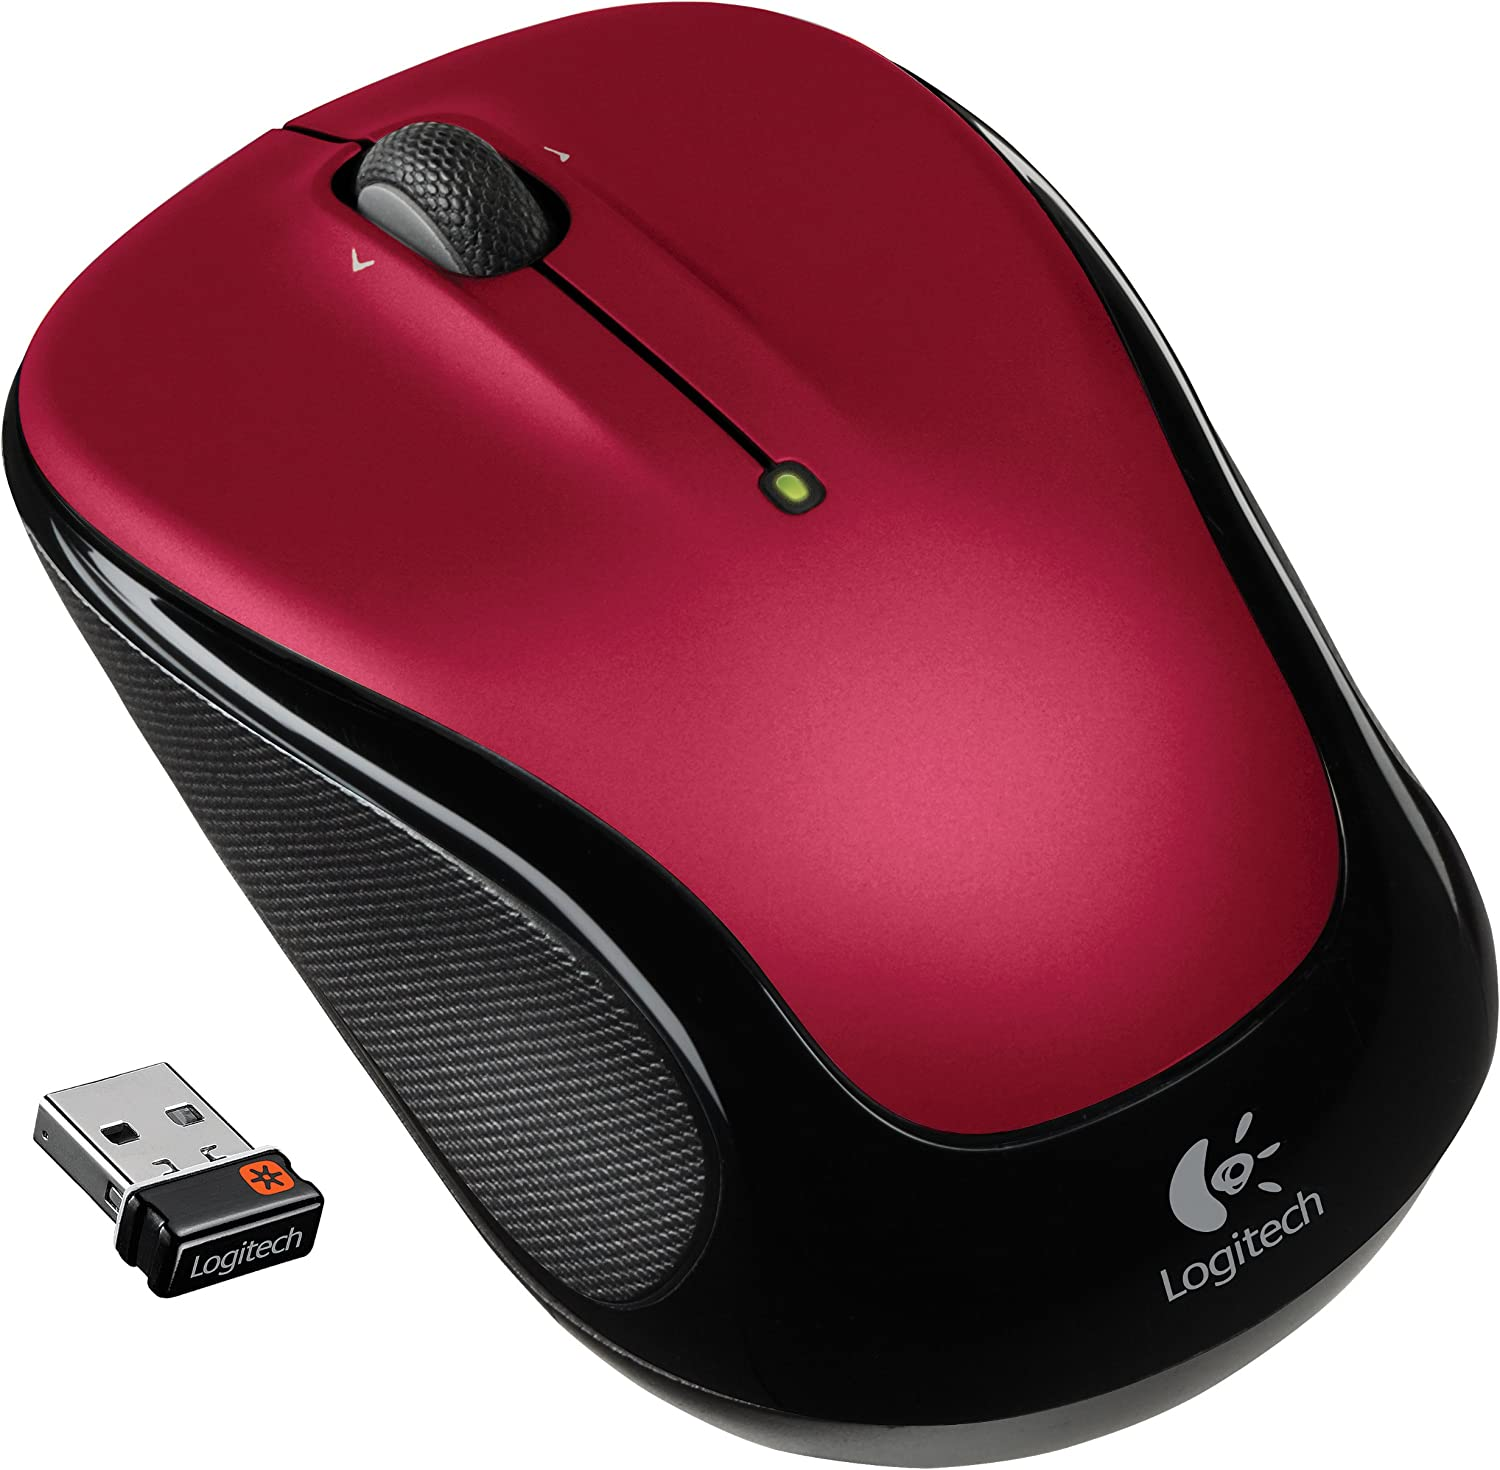 Logitech Wireless Mouse M325 with Designed-For-Web Scrolling - Red